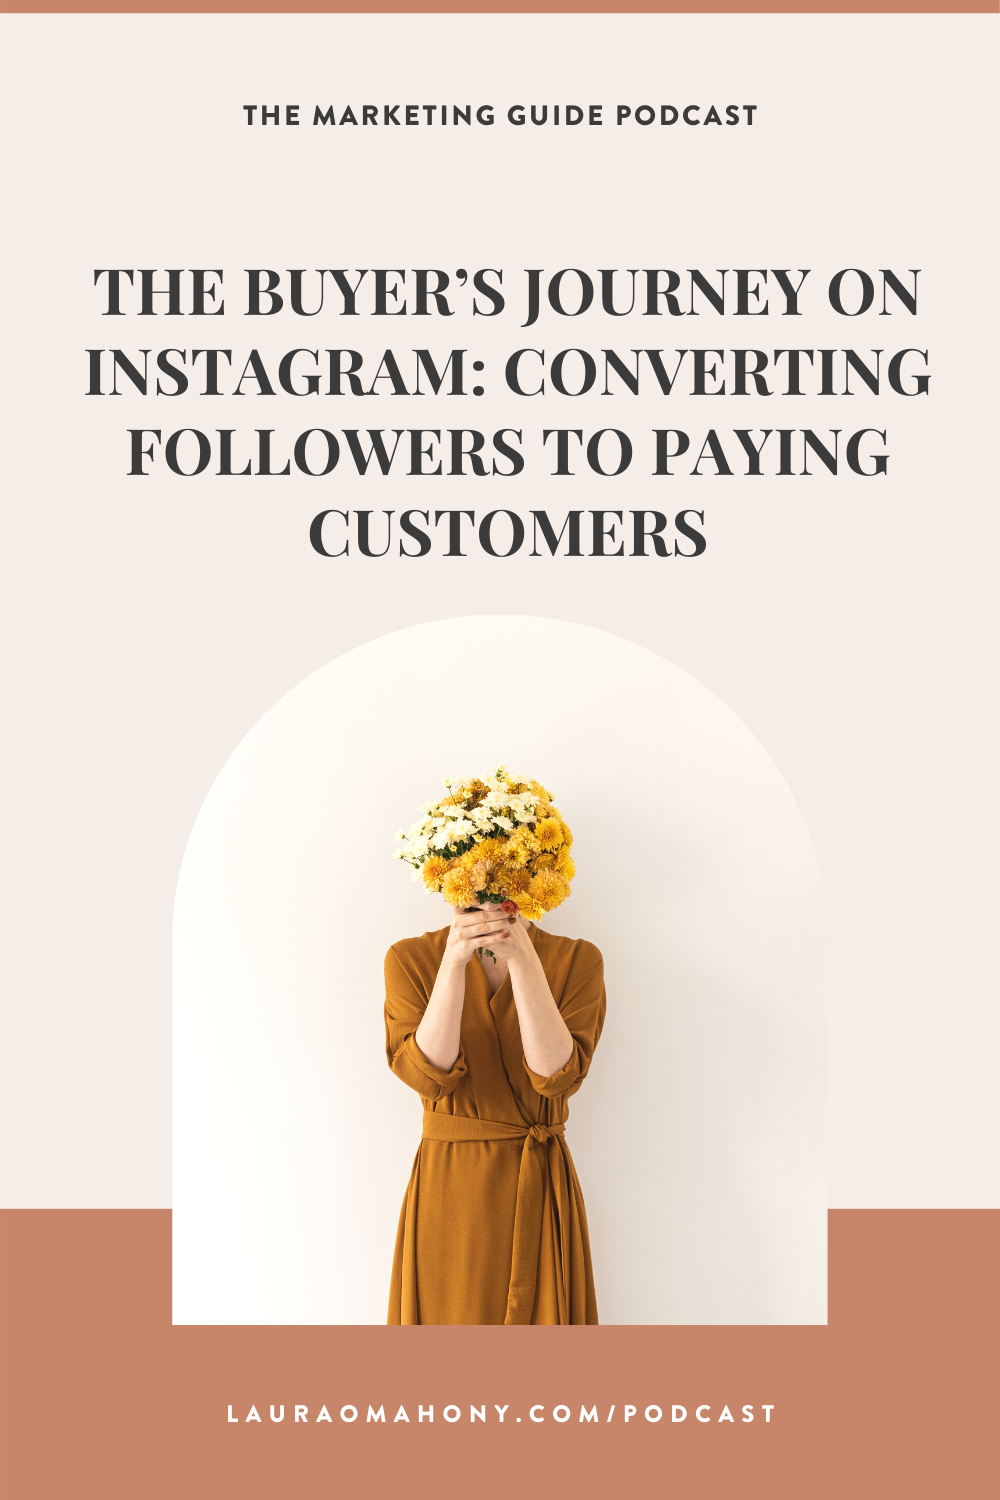 The Marketin Guide The Buyer's Journey on Instagram Converting Followers to Paying Customers